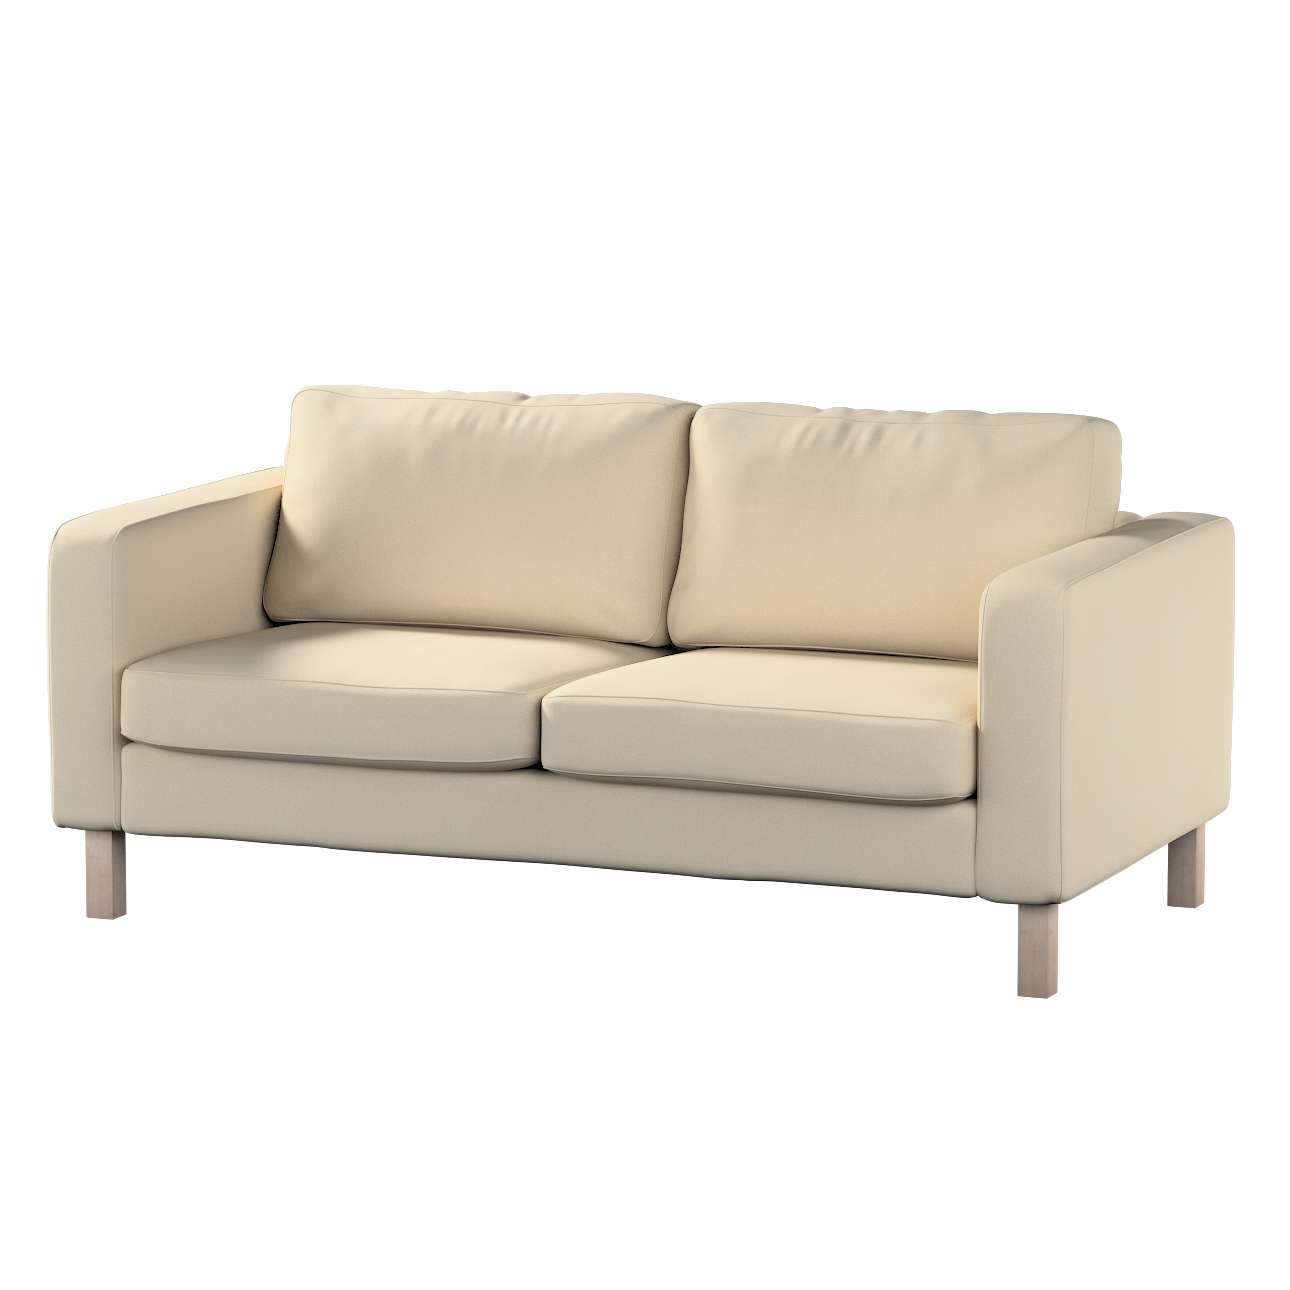 Karlstad 2-seater sofa cover in collection Madrid, fabric: 160-61